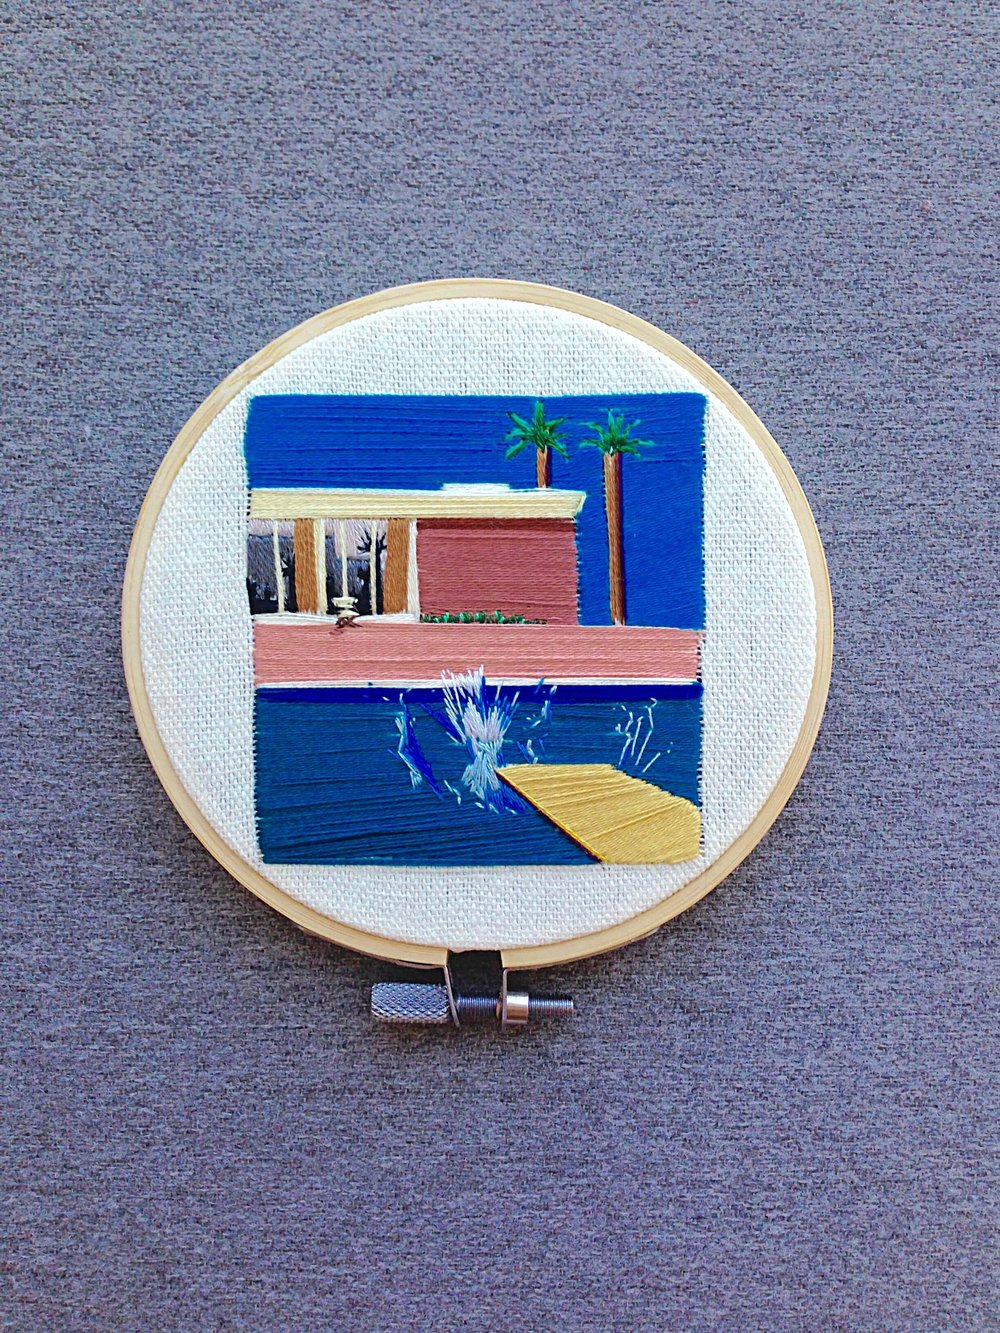 David Hockney, A Bigger Splash, 1967